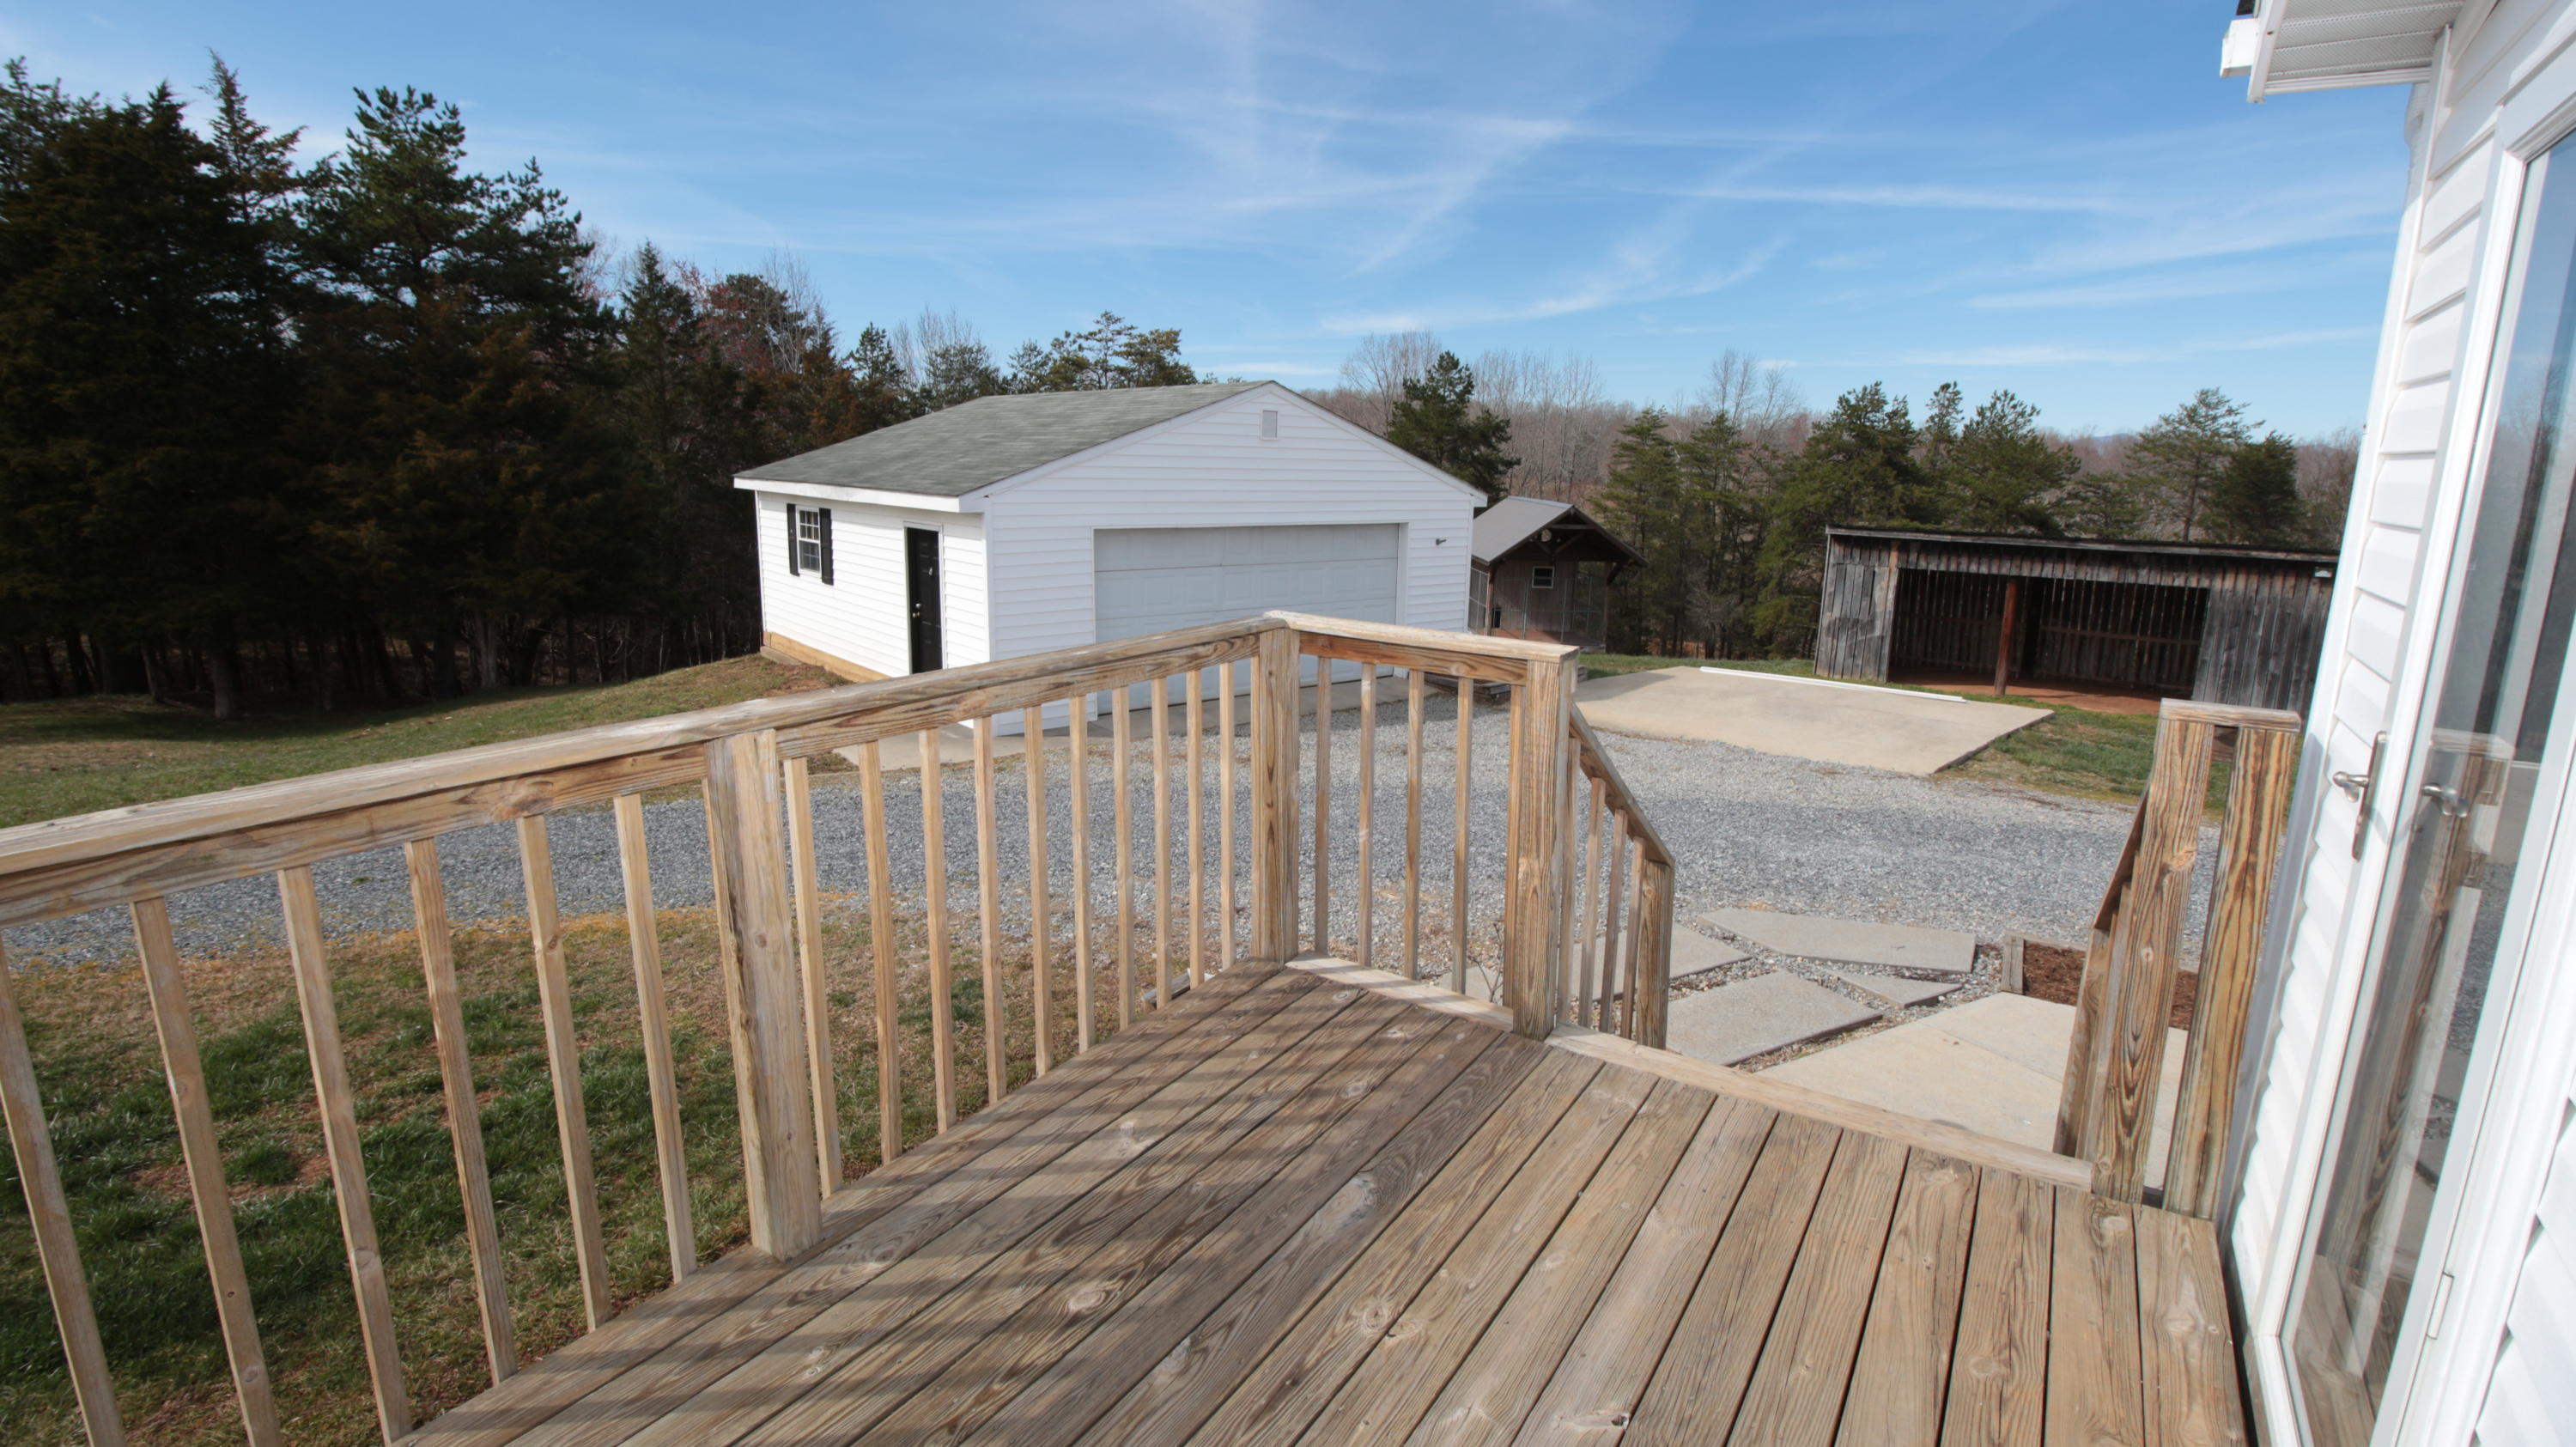 Additional photo for property listing at 1396 Stone Mountain Rd Bedford, Virginia 24523 United States